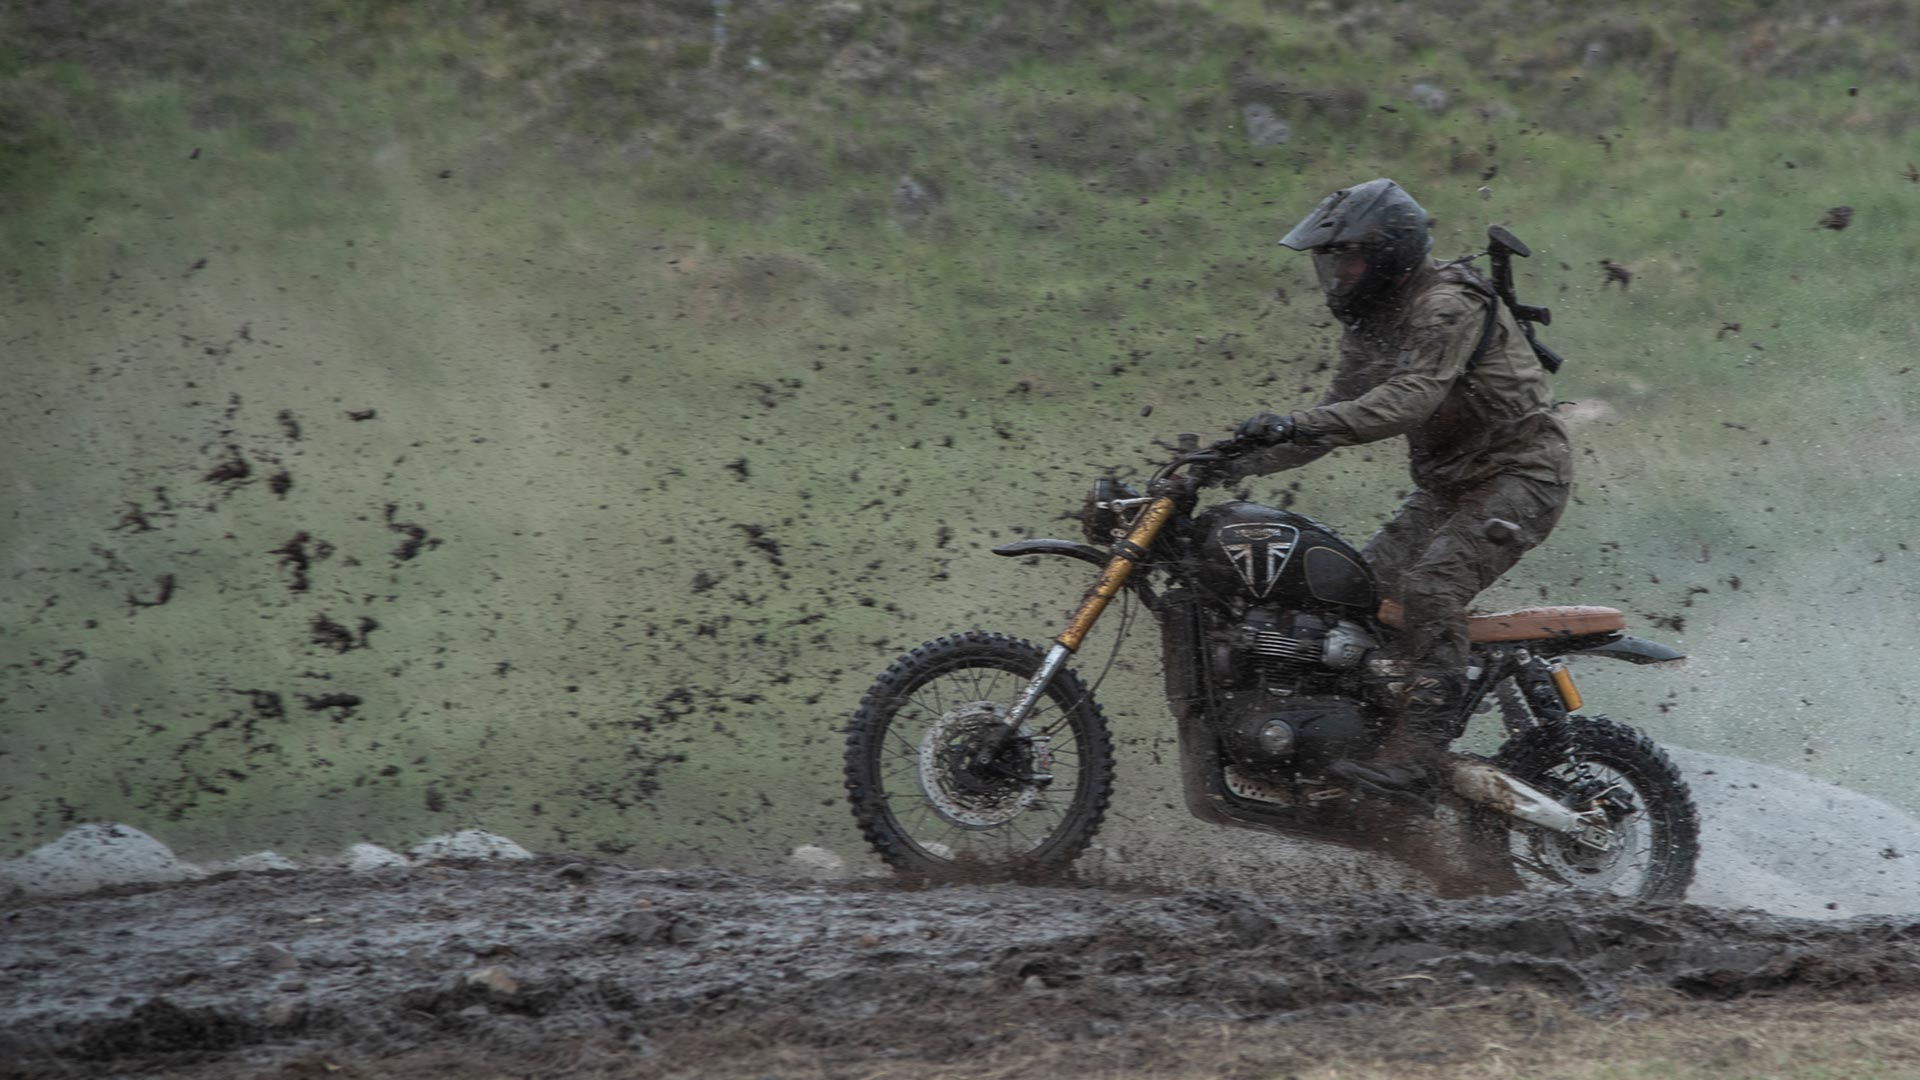 Scrambler 1200 bond edition for the Behind the scenes